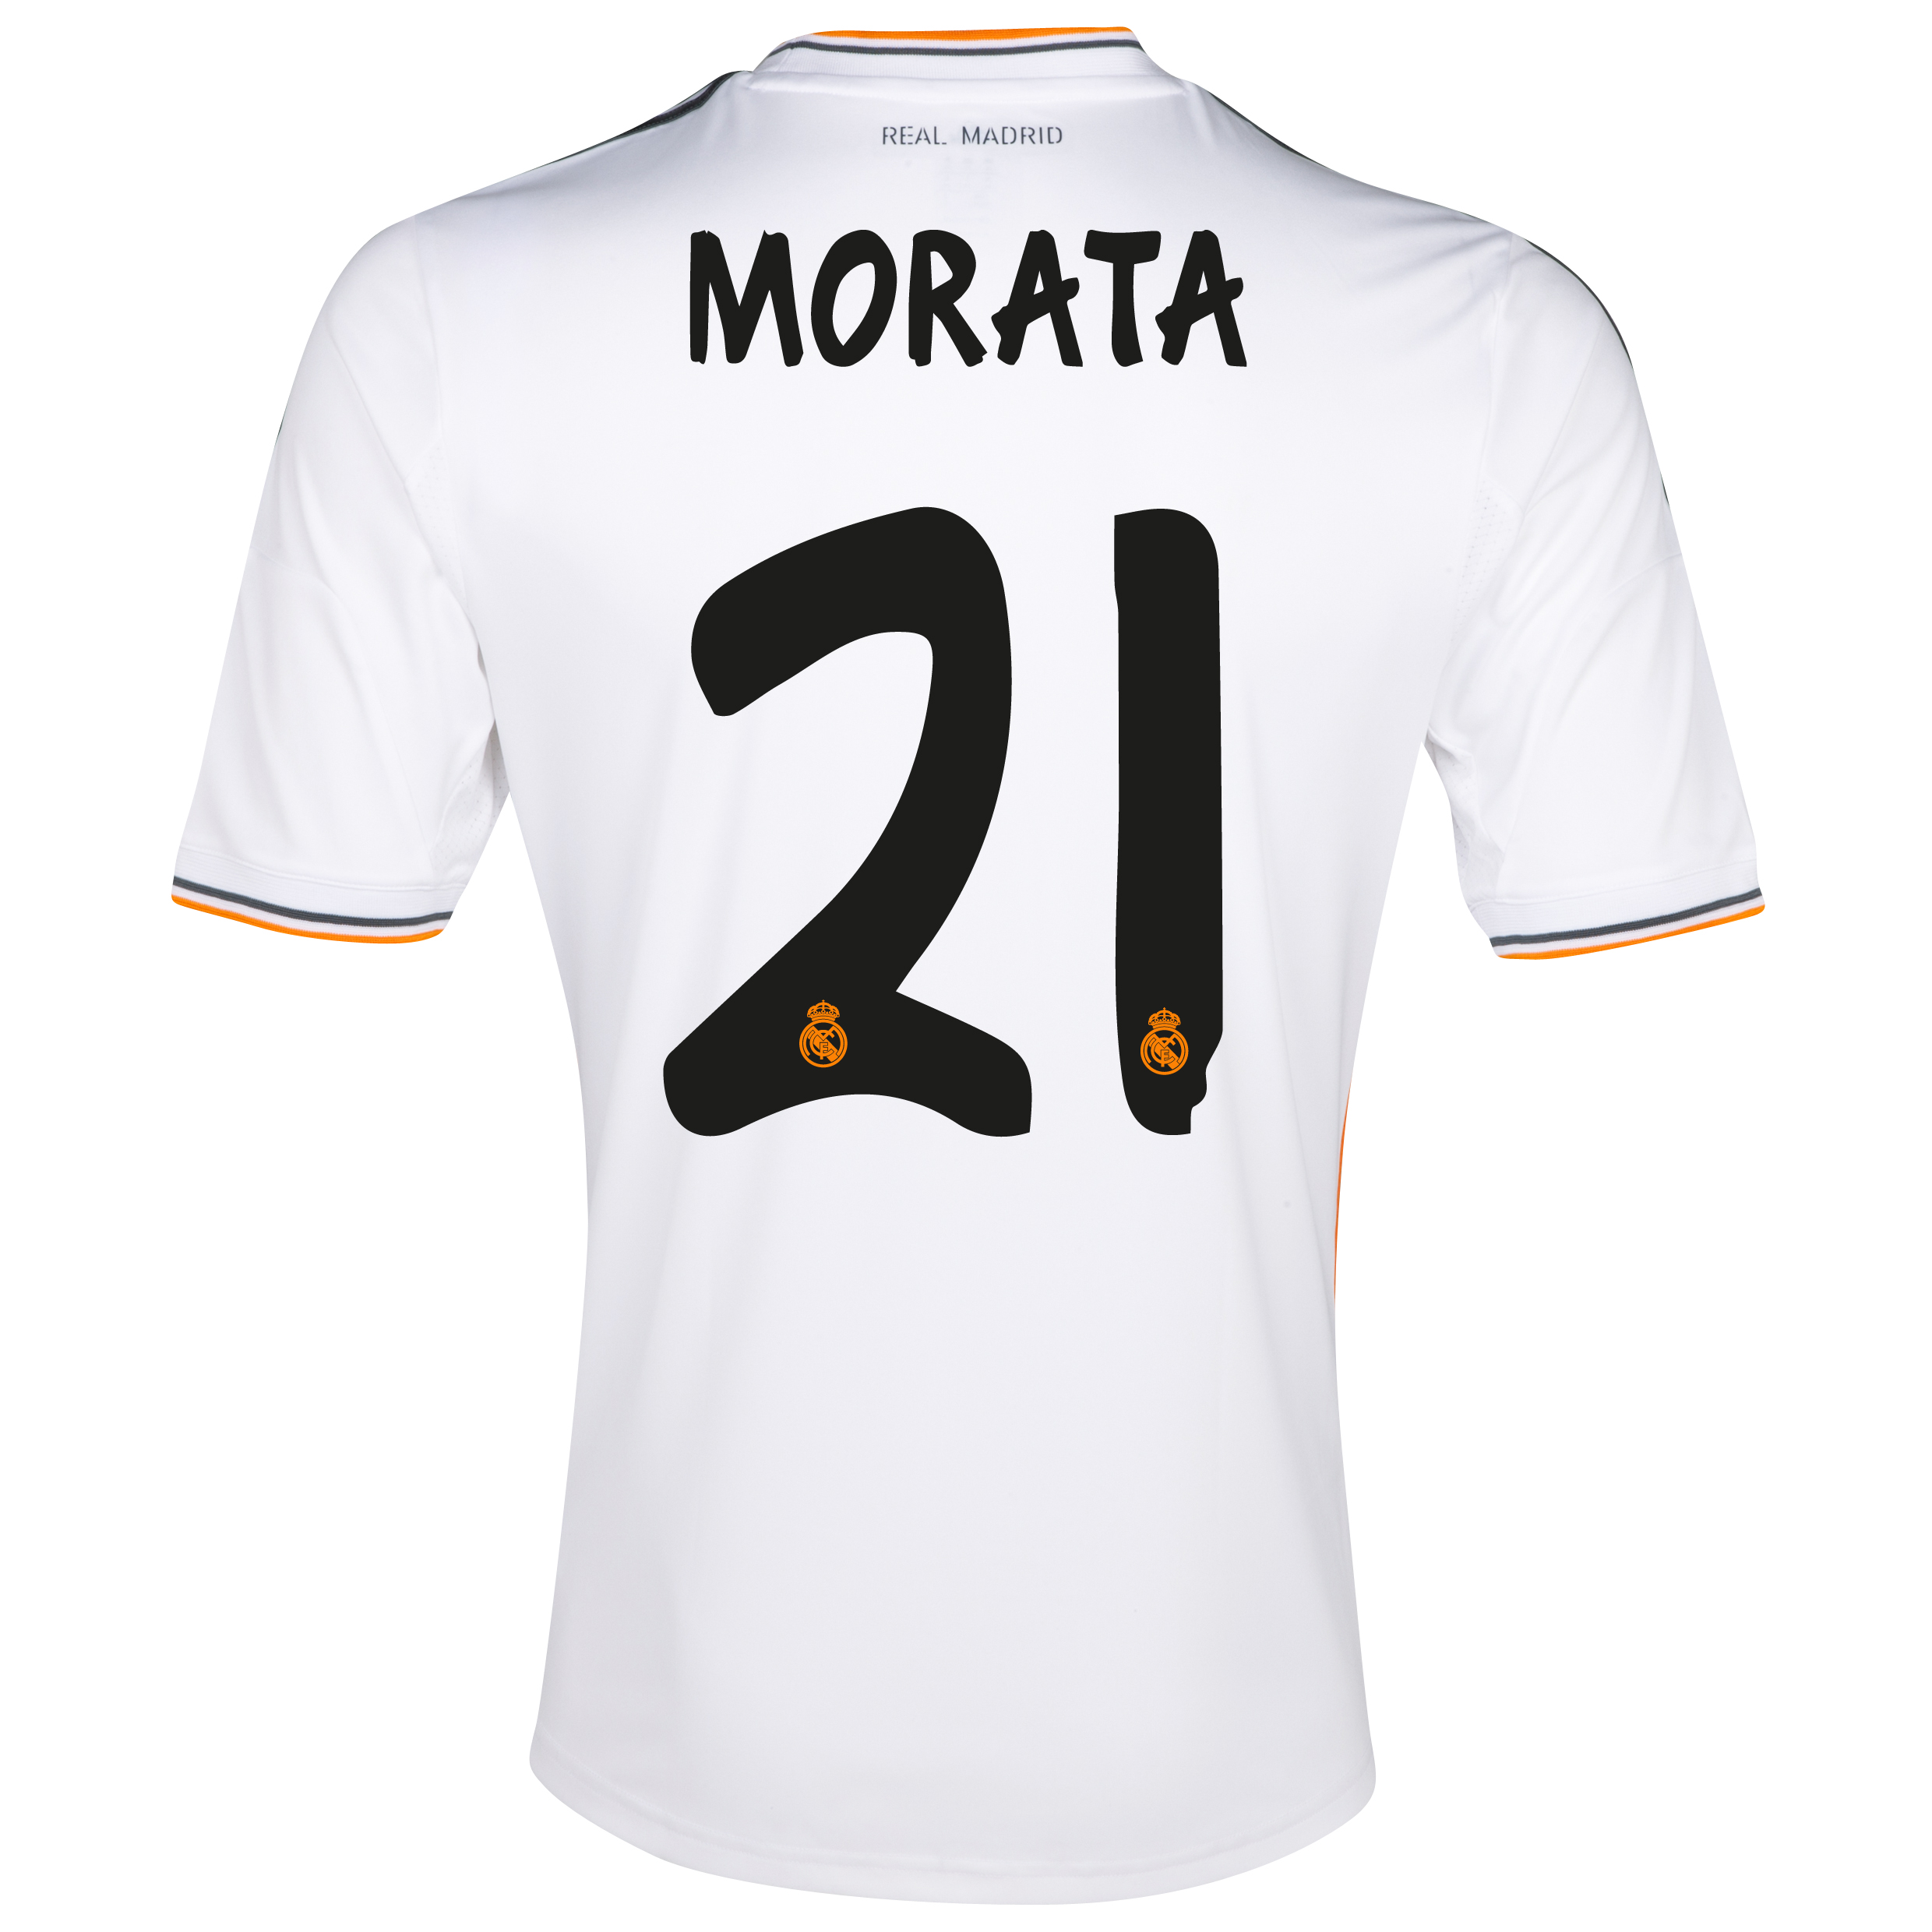 Real Madrid Home Shirt 2013/14 - Kids with Morata 29 printing